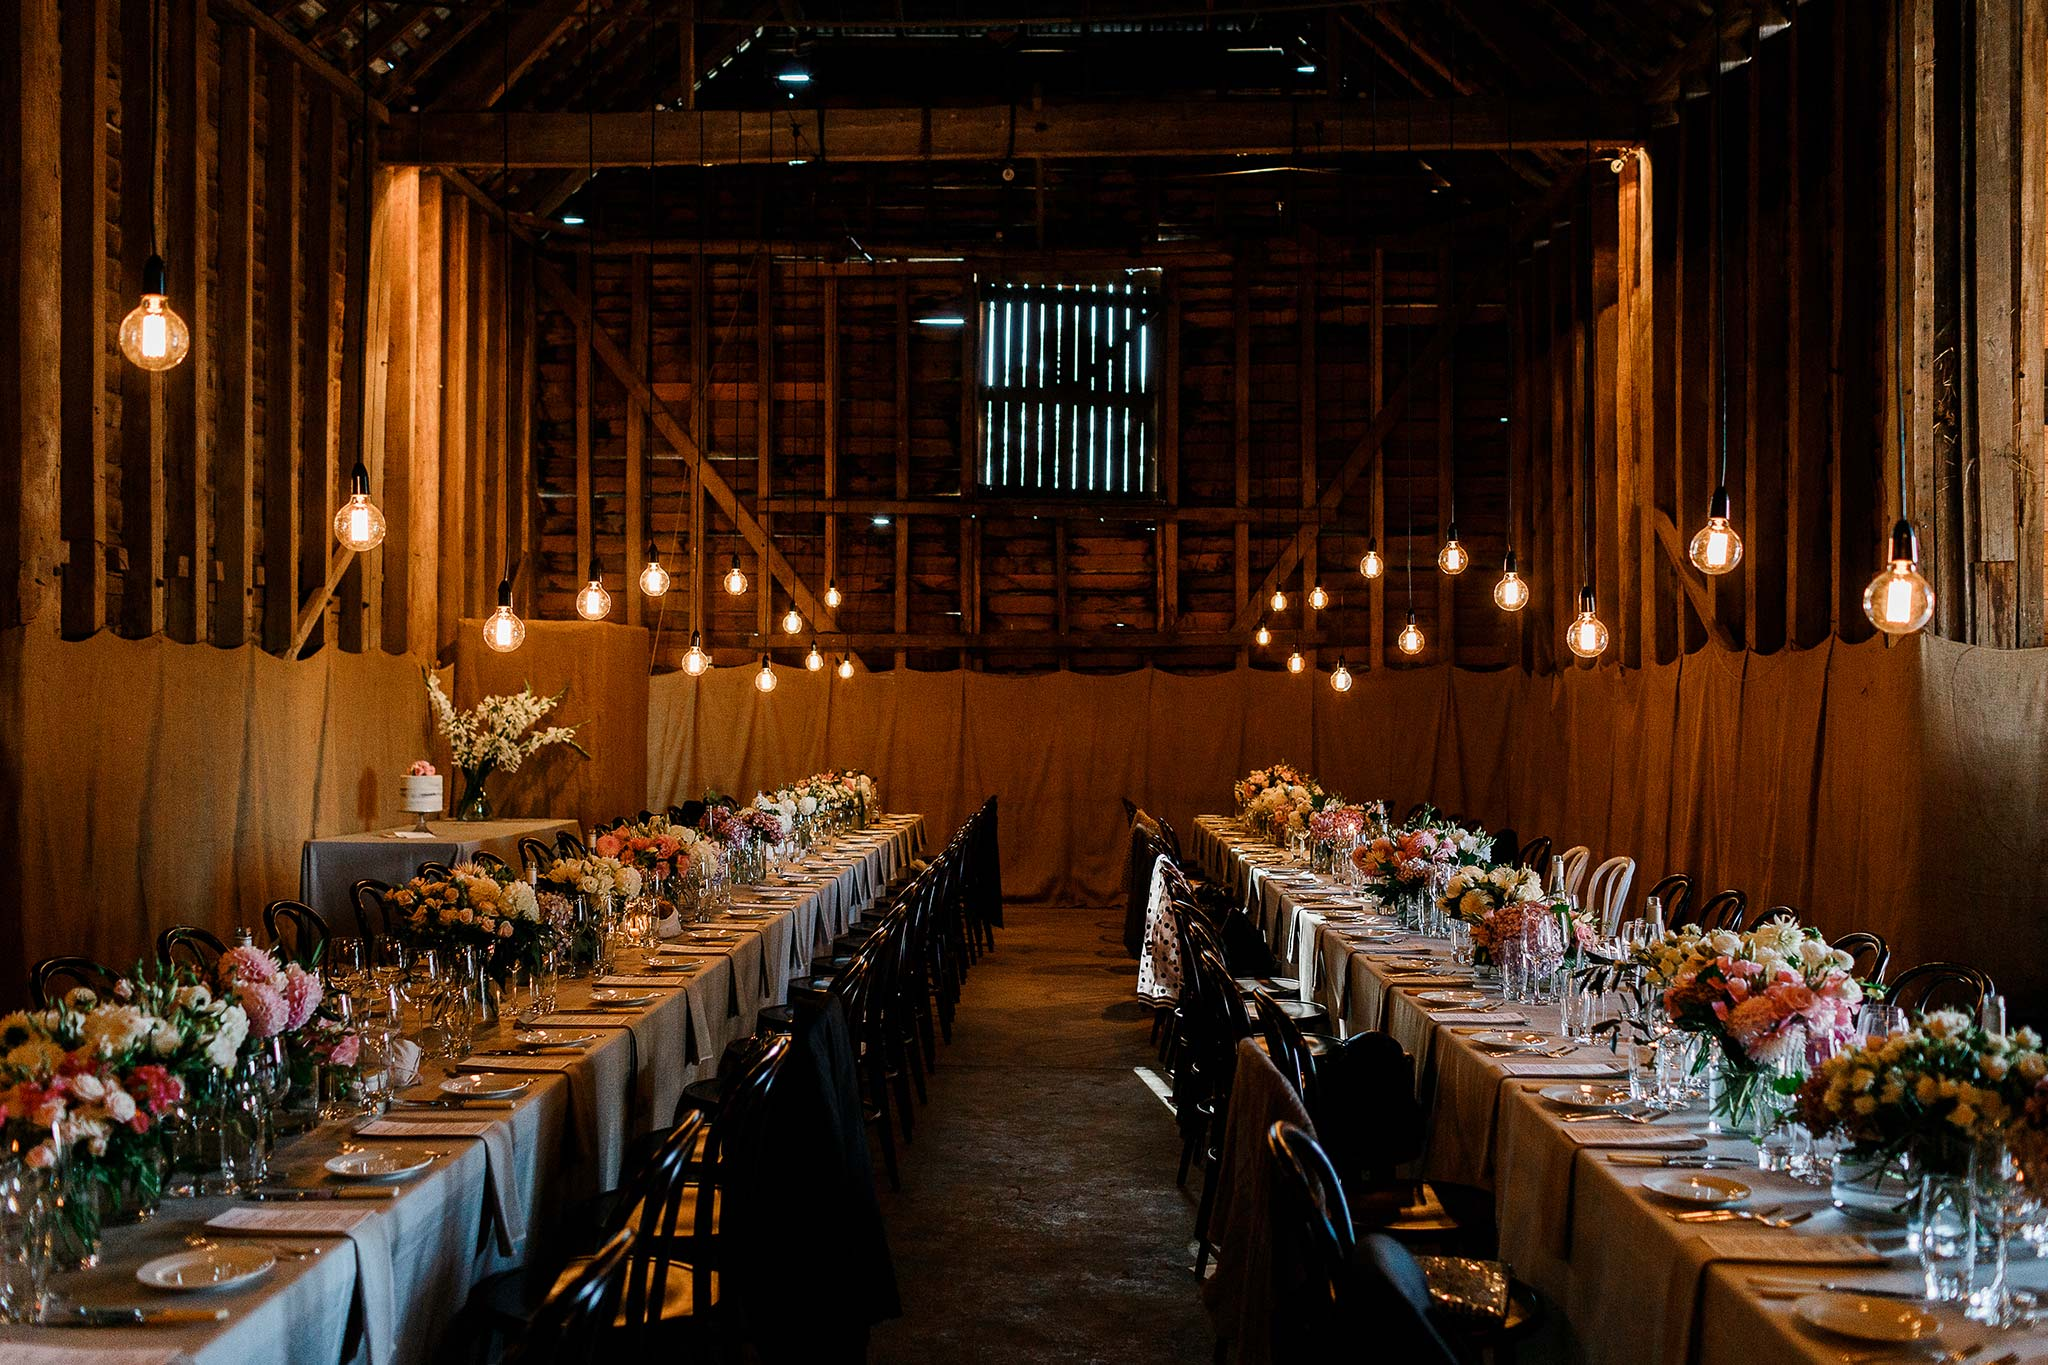 Brickendon barn set for intimate dining with custom lighting